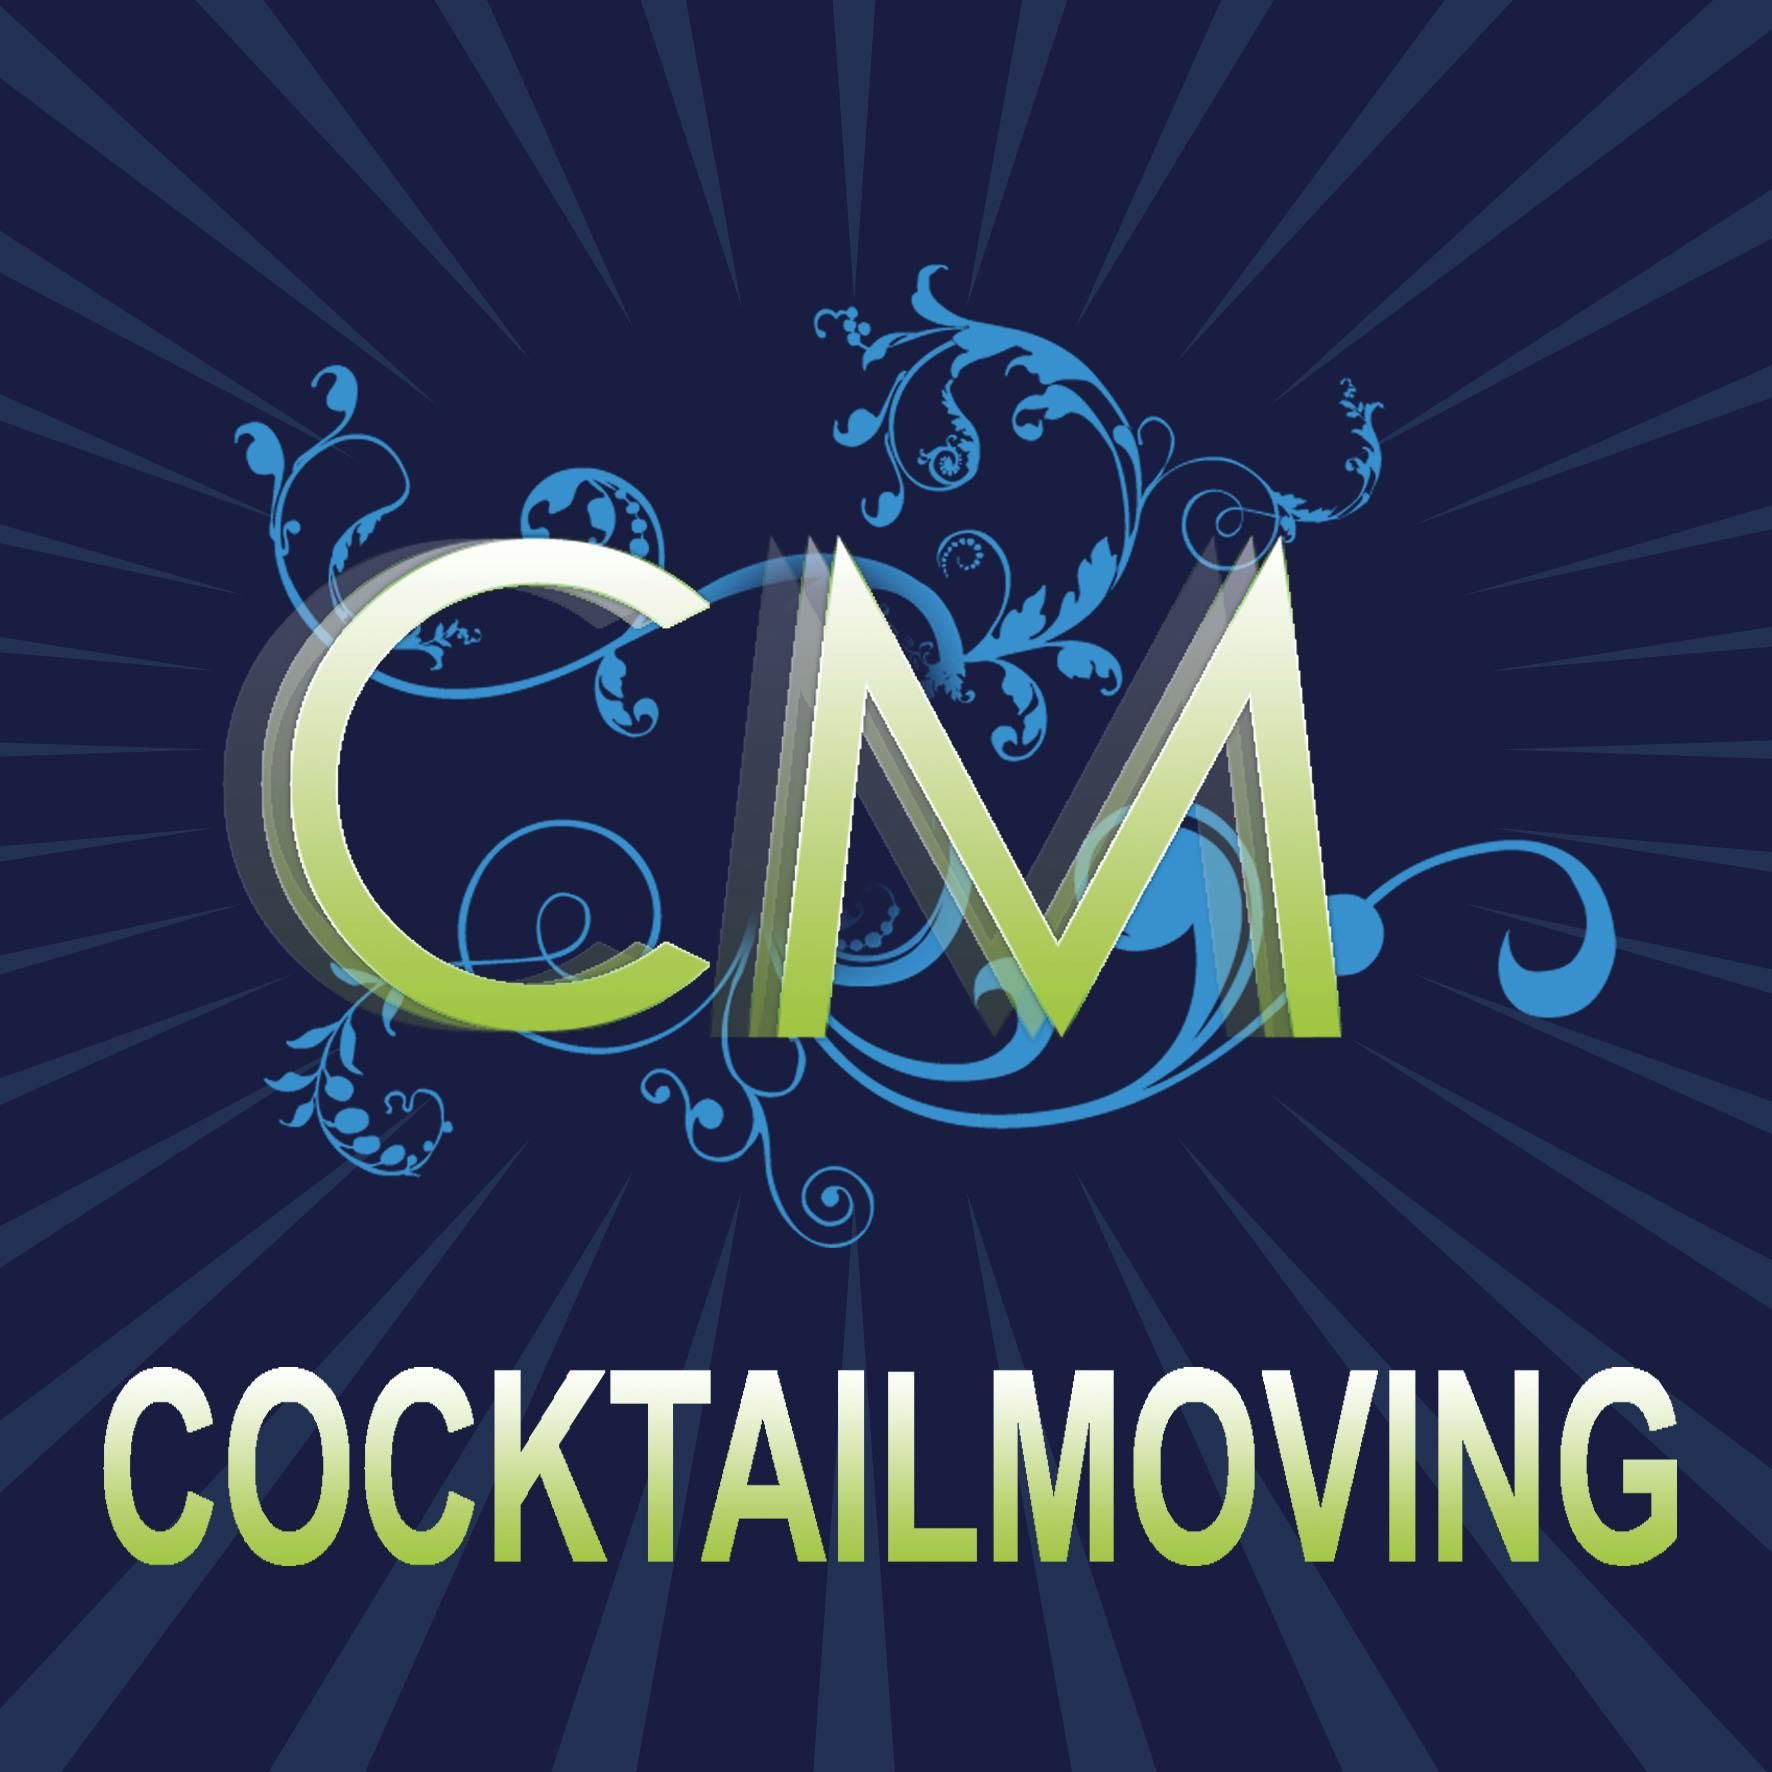 Cocktailmoving